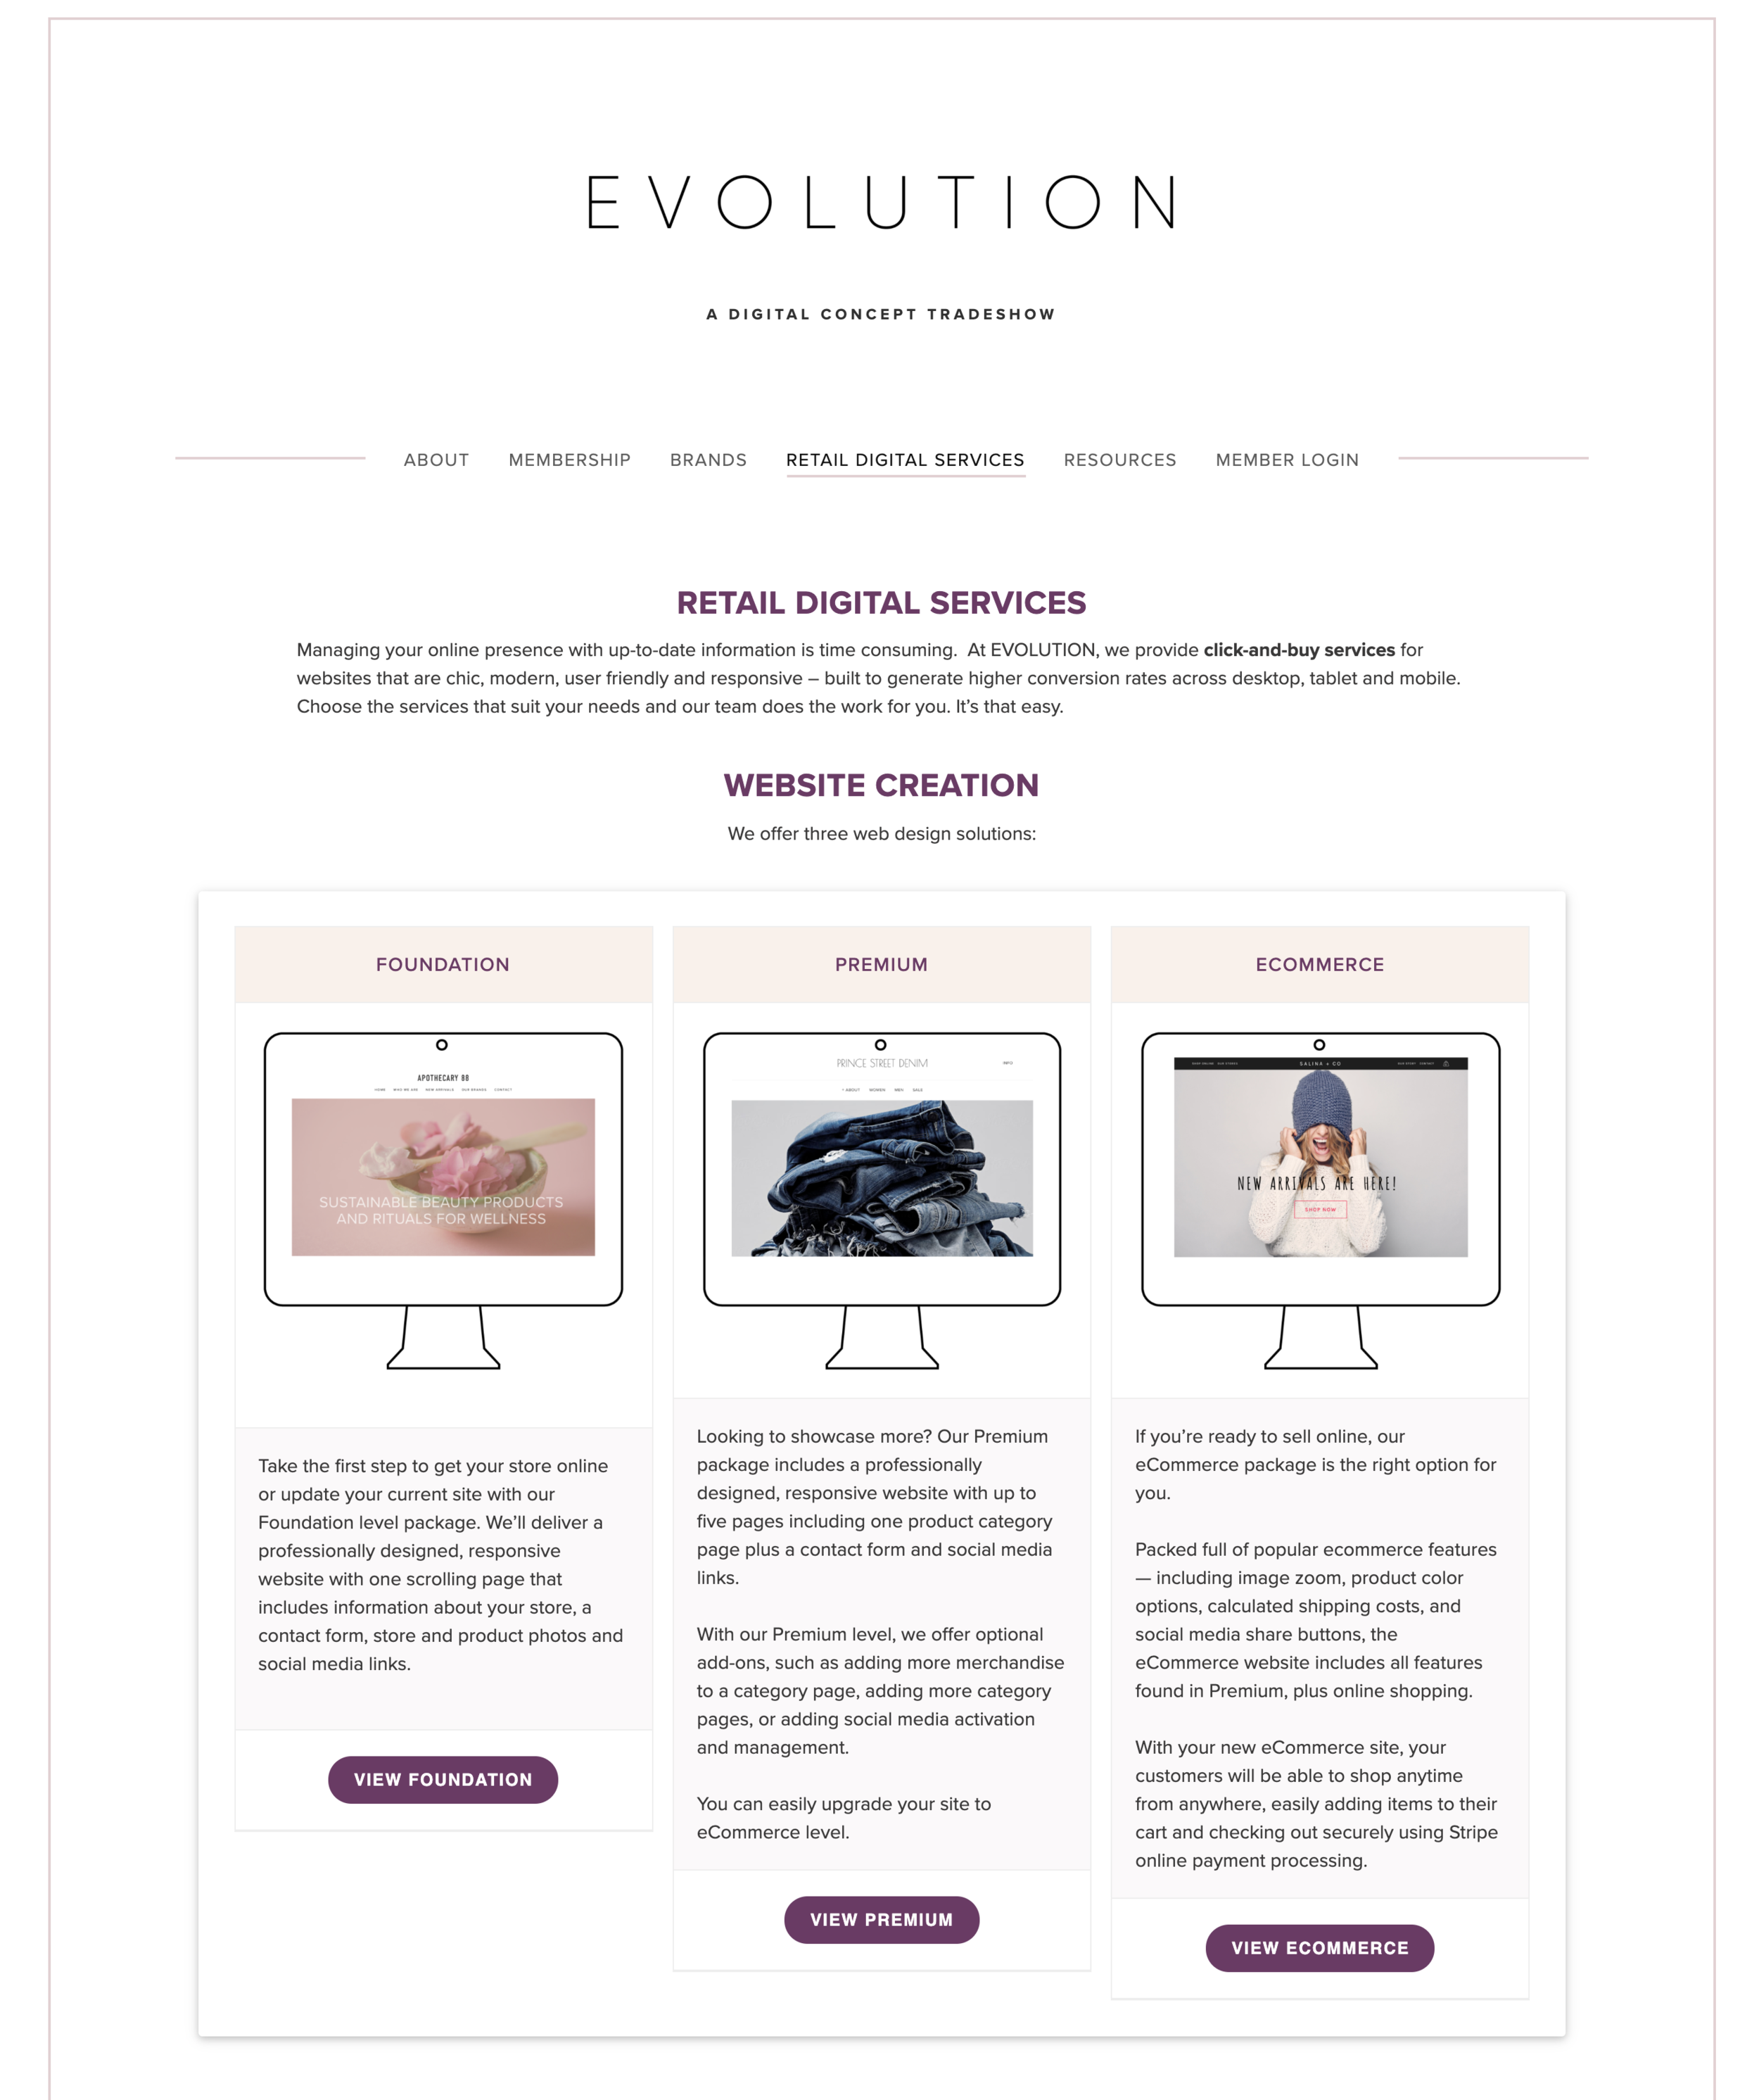 screencapture-evolutionconceptshow-digital-services-2019-04-12-13_50_18.png